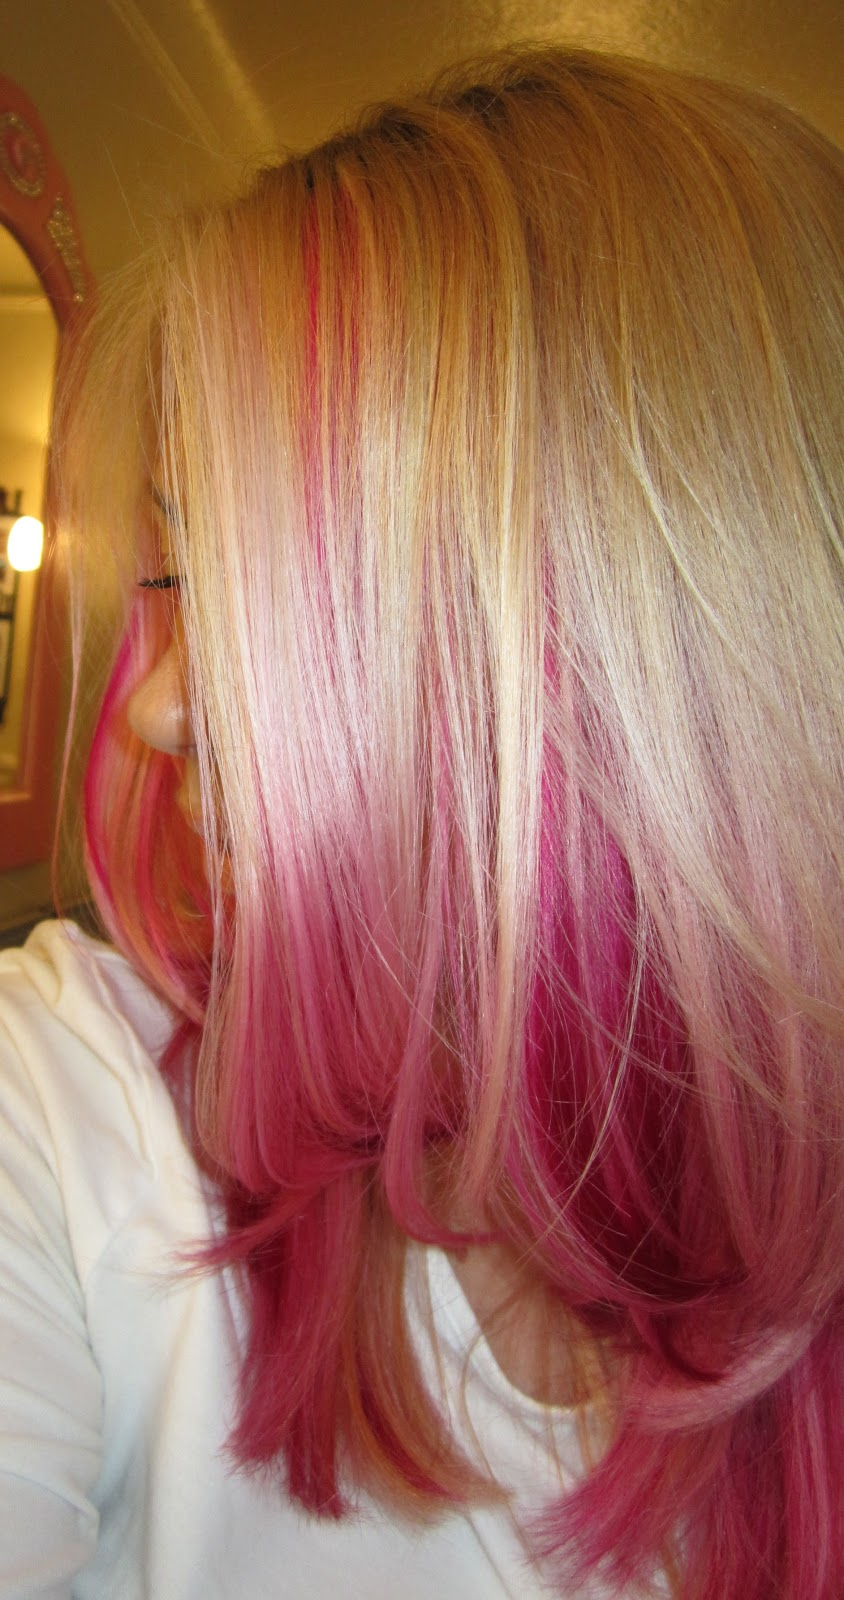 Sam Schuerman How To Dye Your Hair Pink